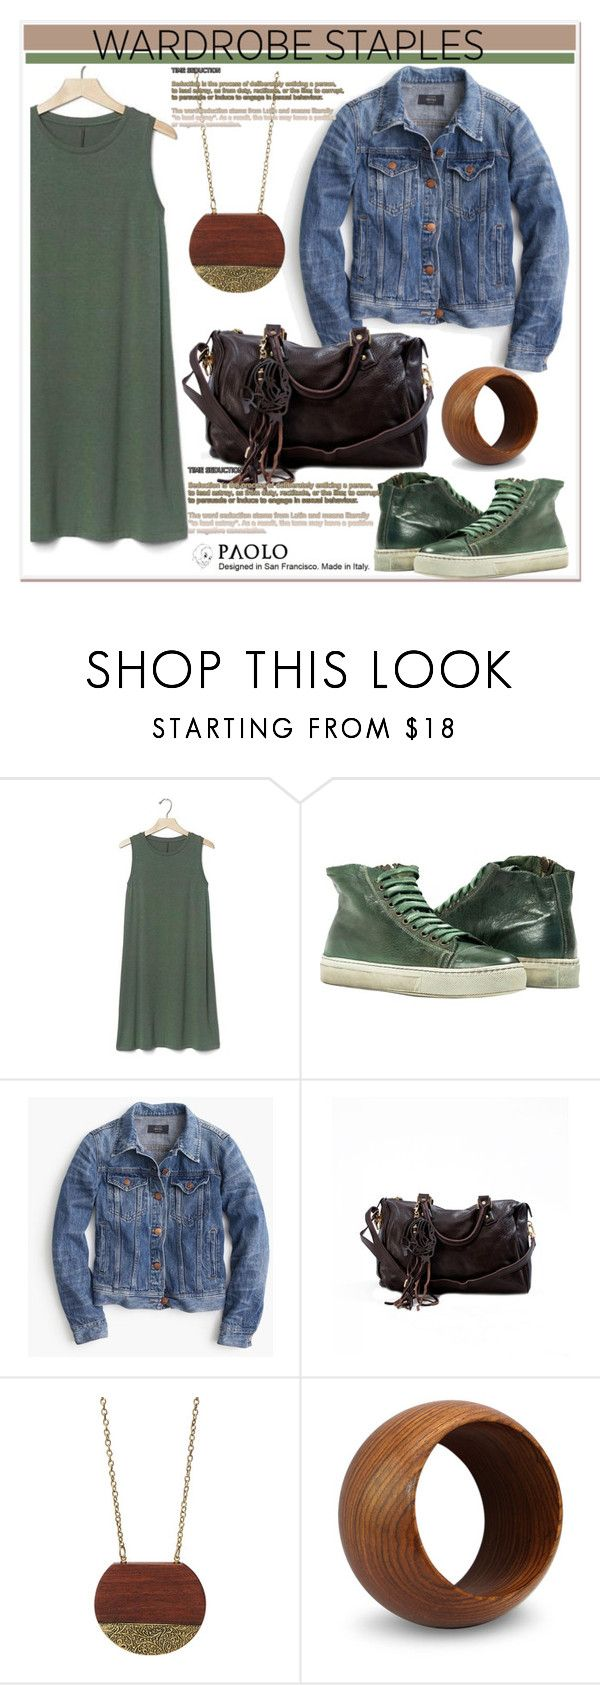 """""""Denim Jackets and PaoloShoes"""" by spenderellastyle ❤ liked on Polyvore featuring Gap, J.Crew, NOVICA, denimjackets and WardrobeStaples"""